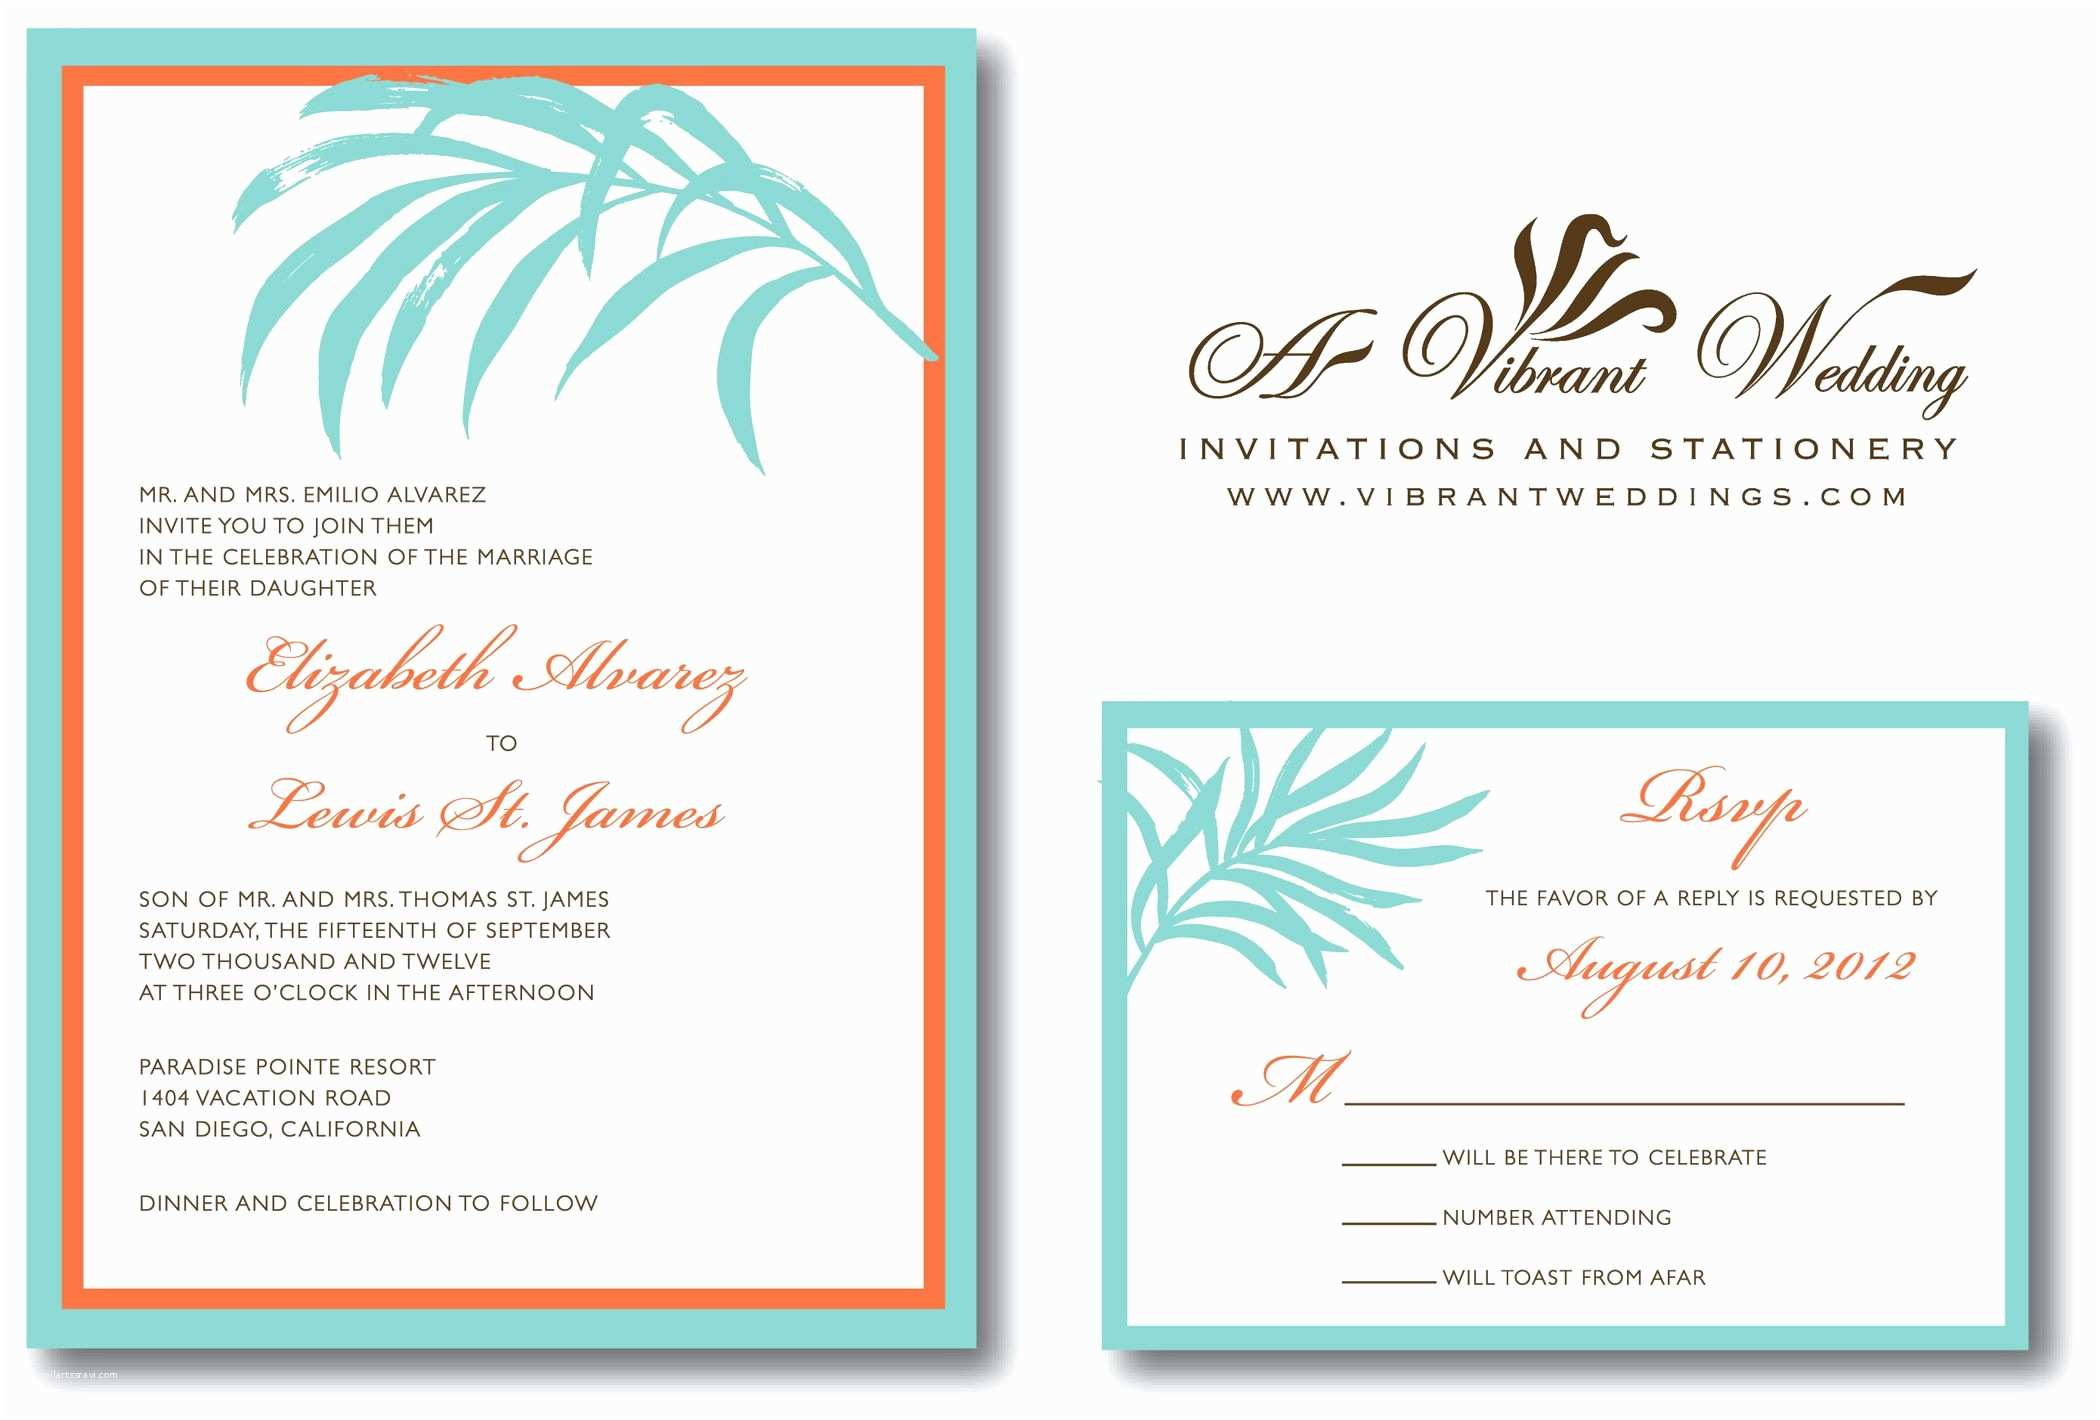 Special Wedding Invitation Wording Beach Wedding Invitation Wording